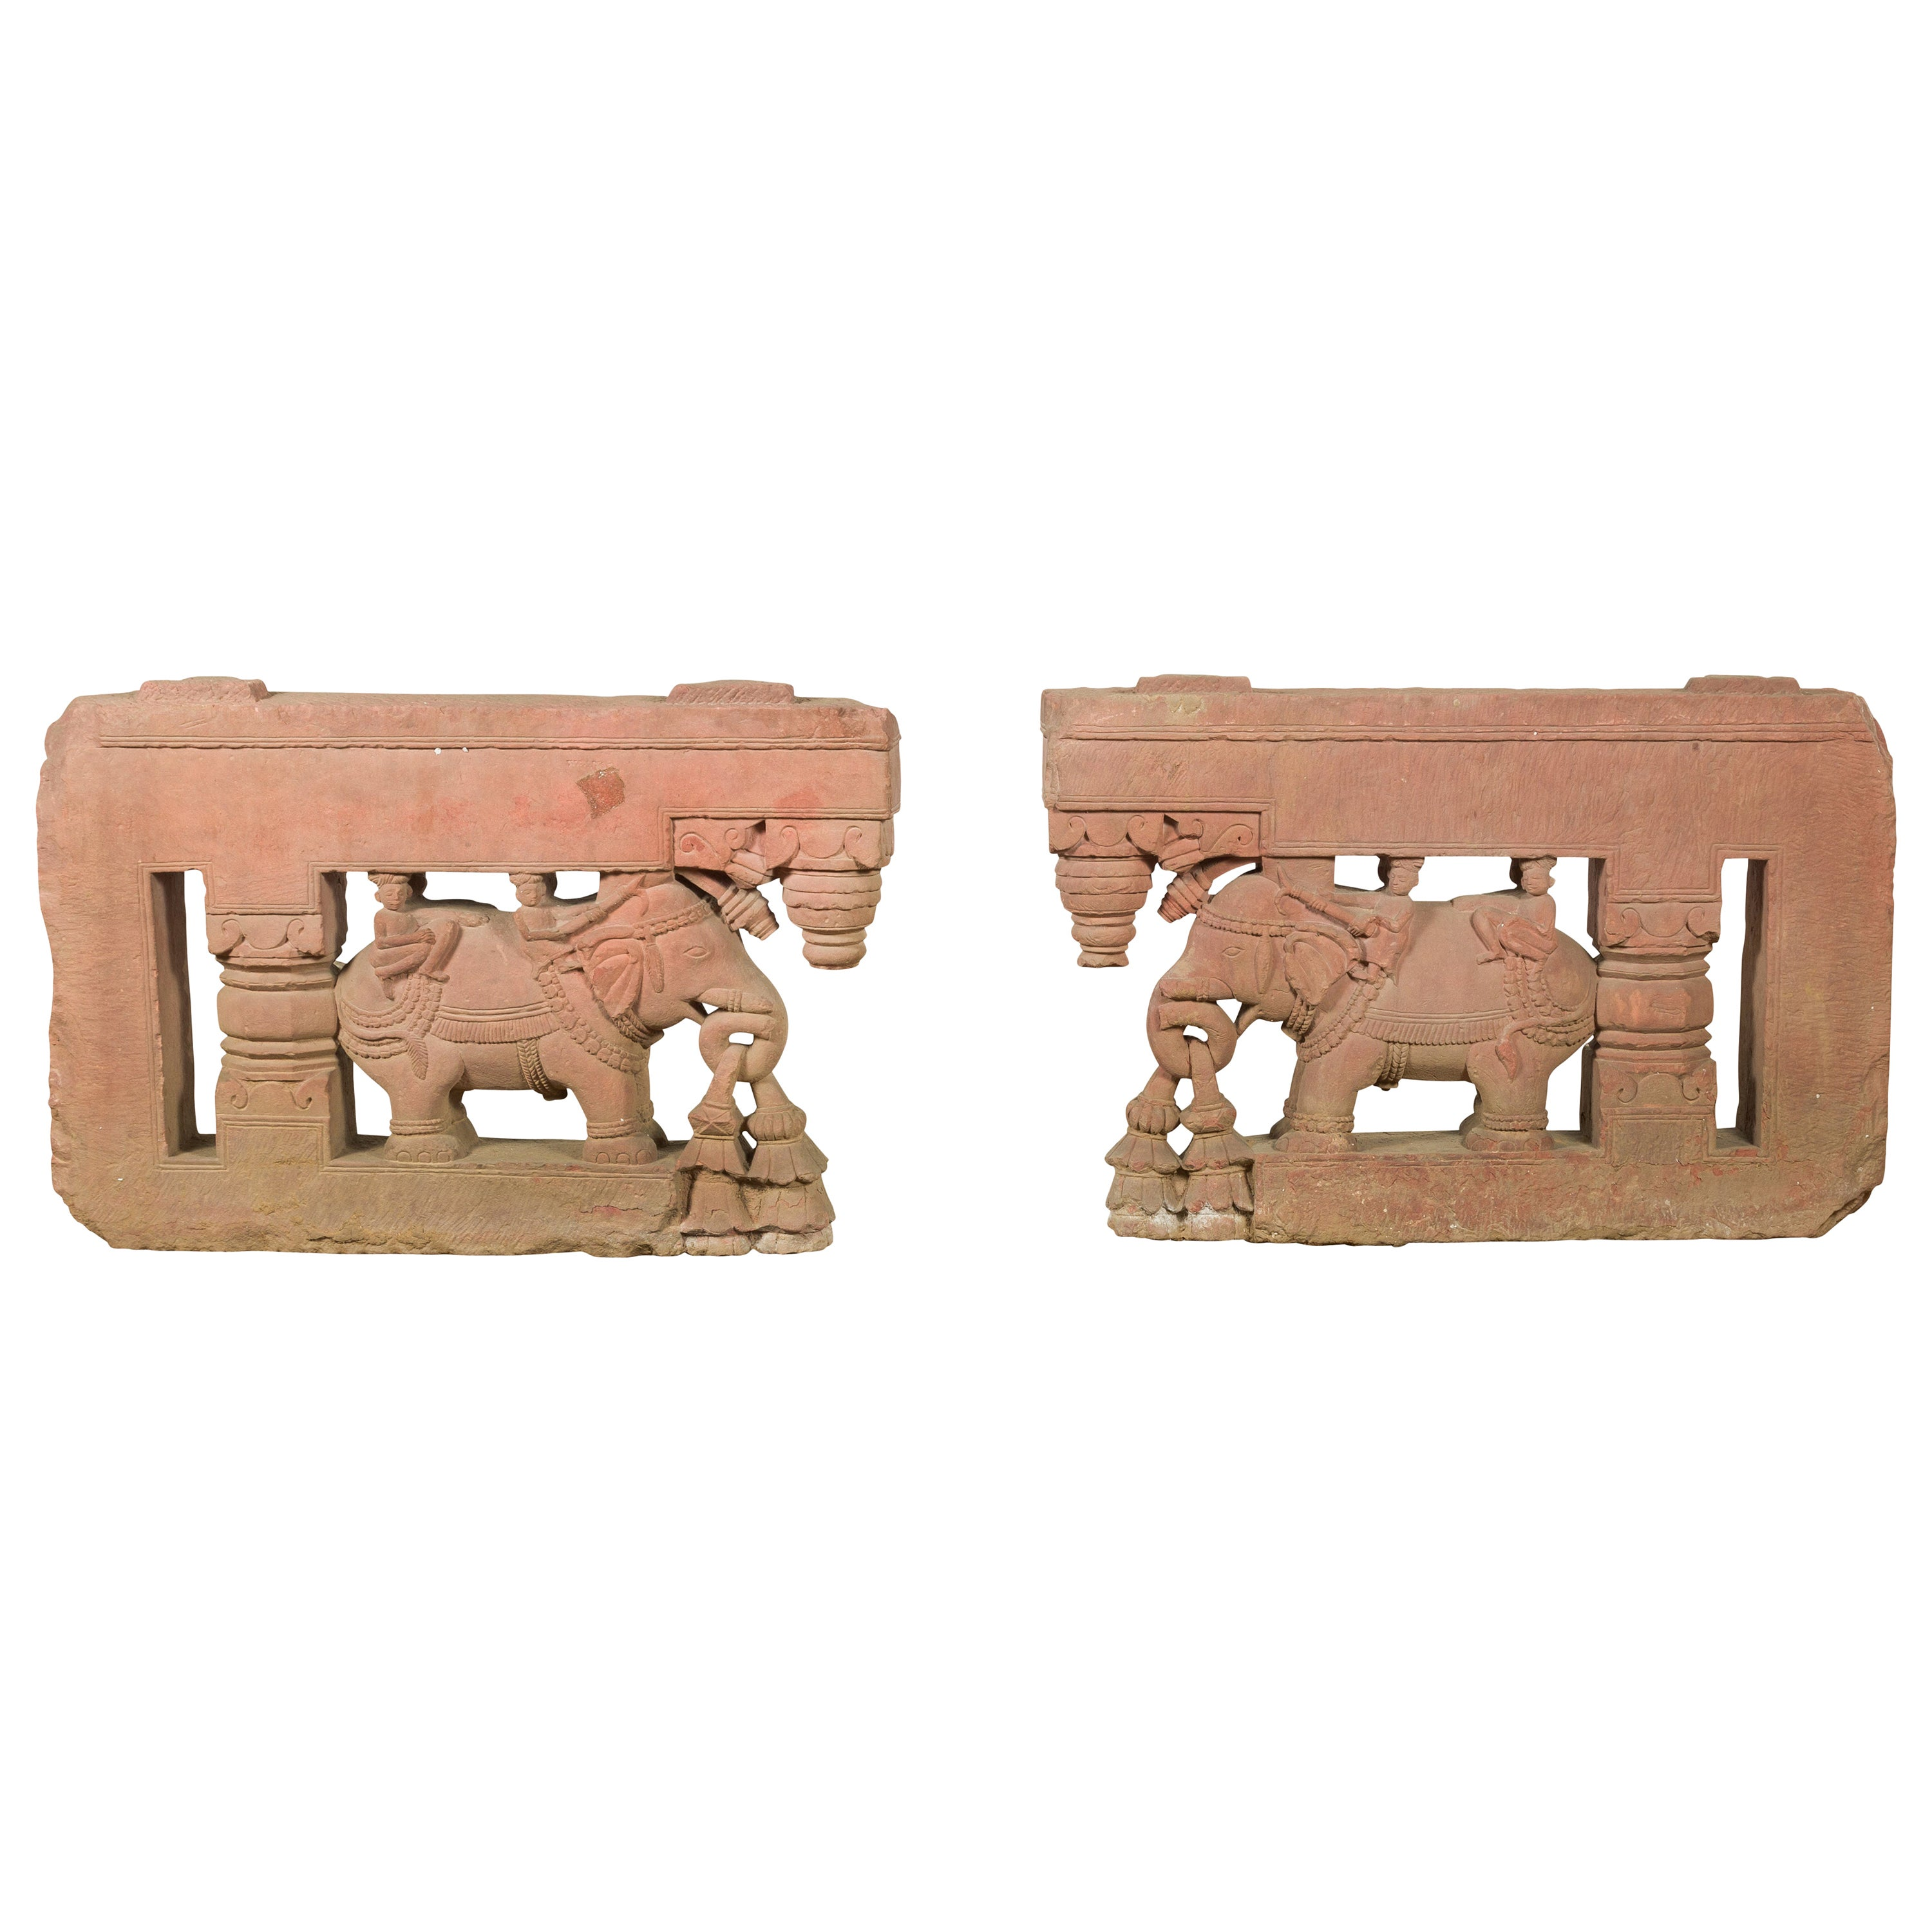 Pair of Antique Indian Carved Stone Bas-Reliefs Depicting Men Riding Elephants